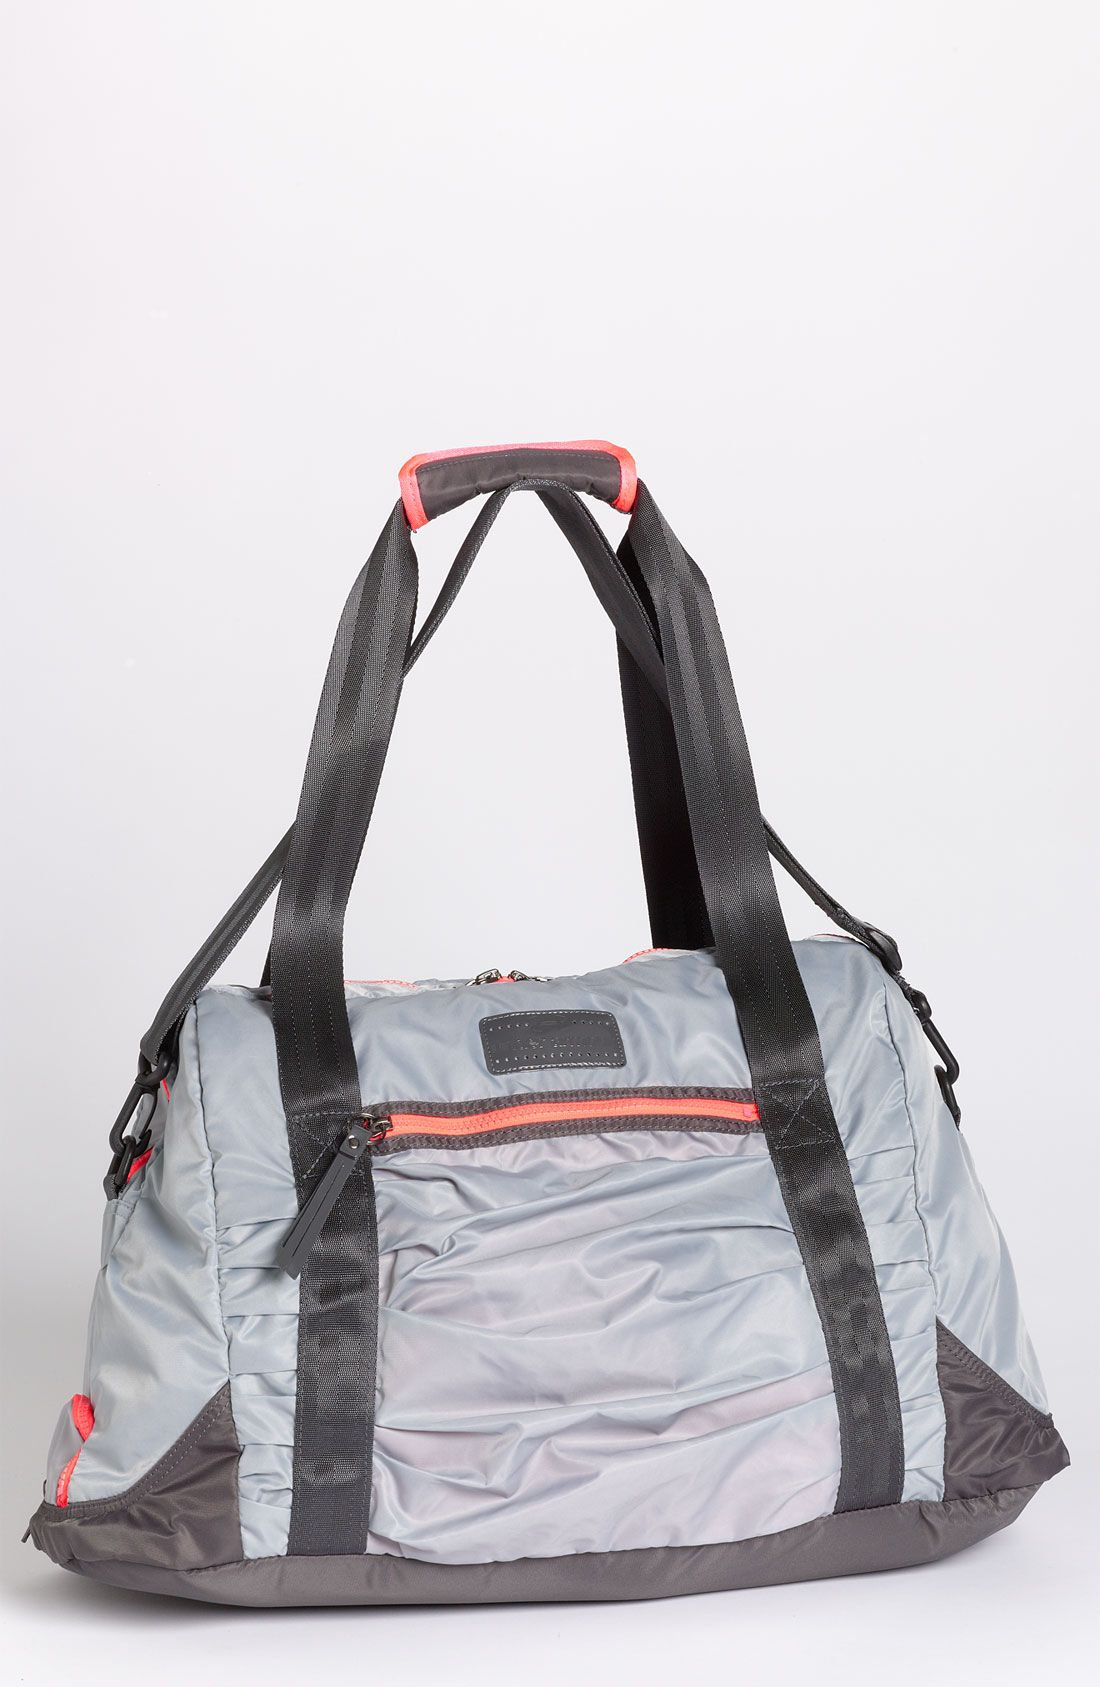 eda80c0123 Under Armour Shatter Gym Tote in Gray (steel  charcoal  pulse ...